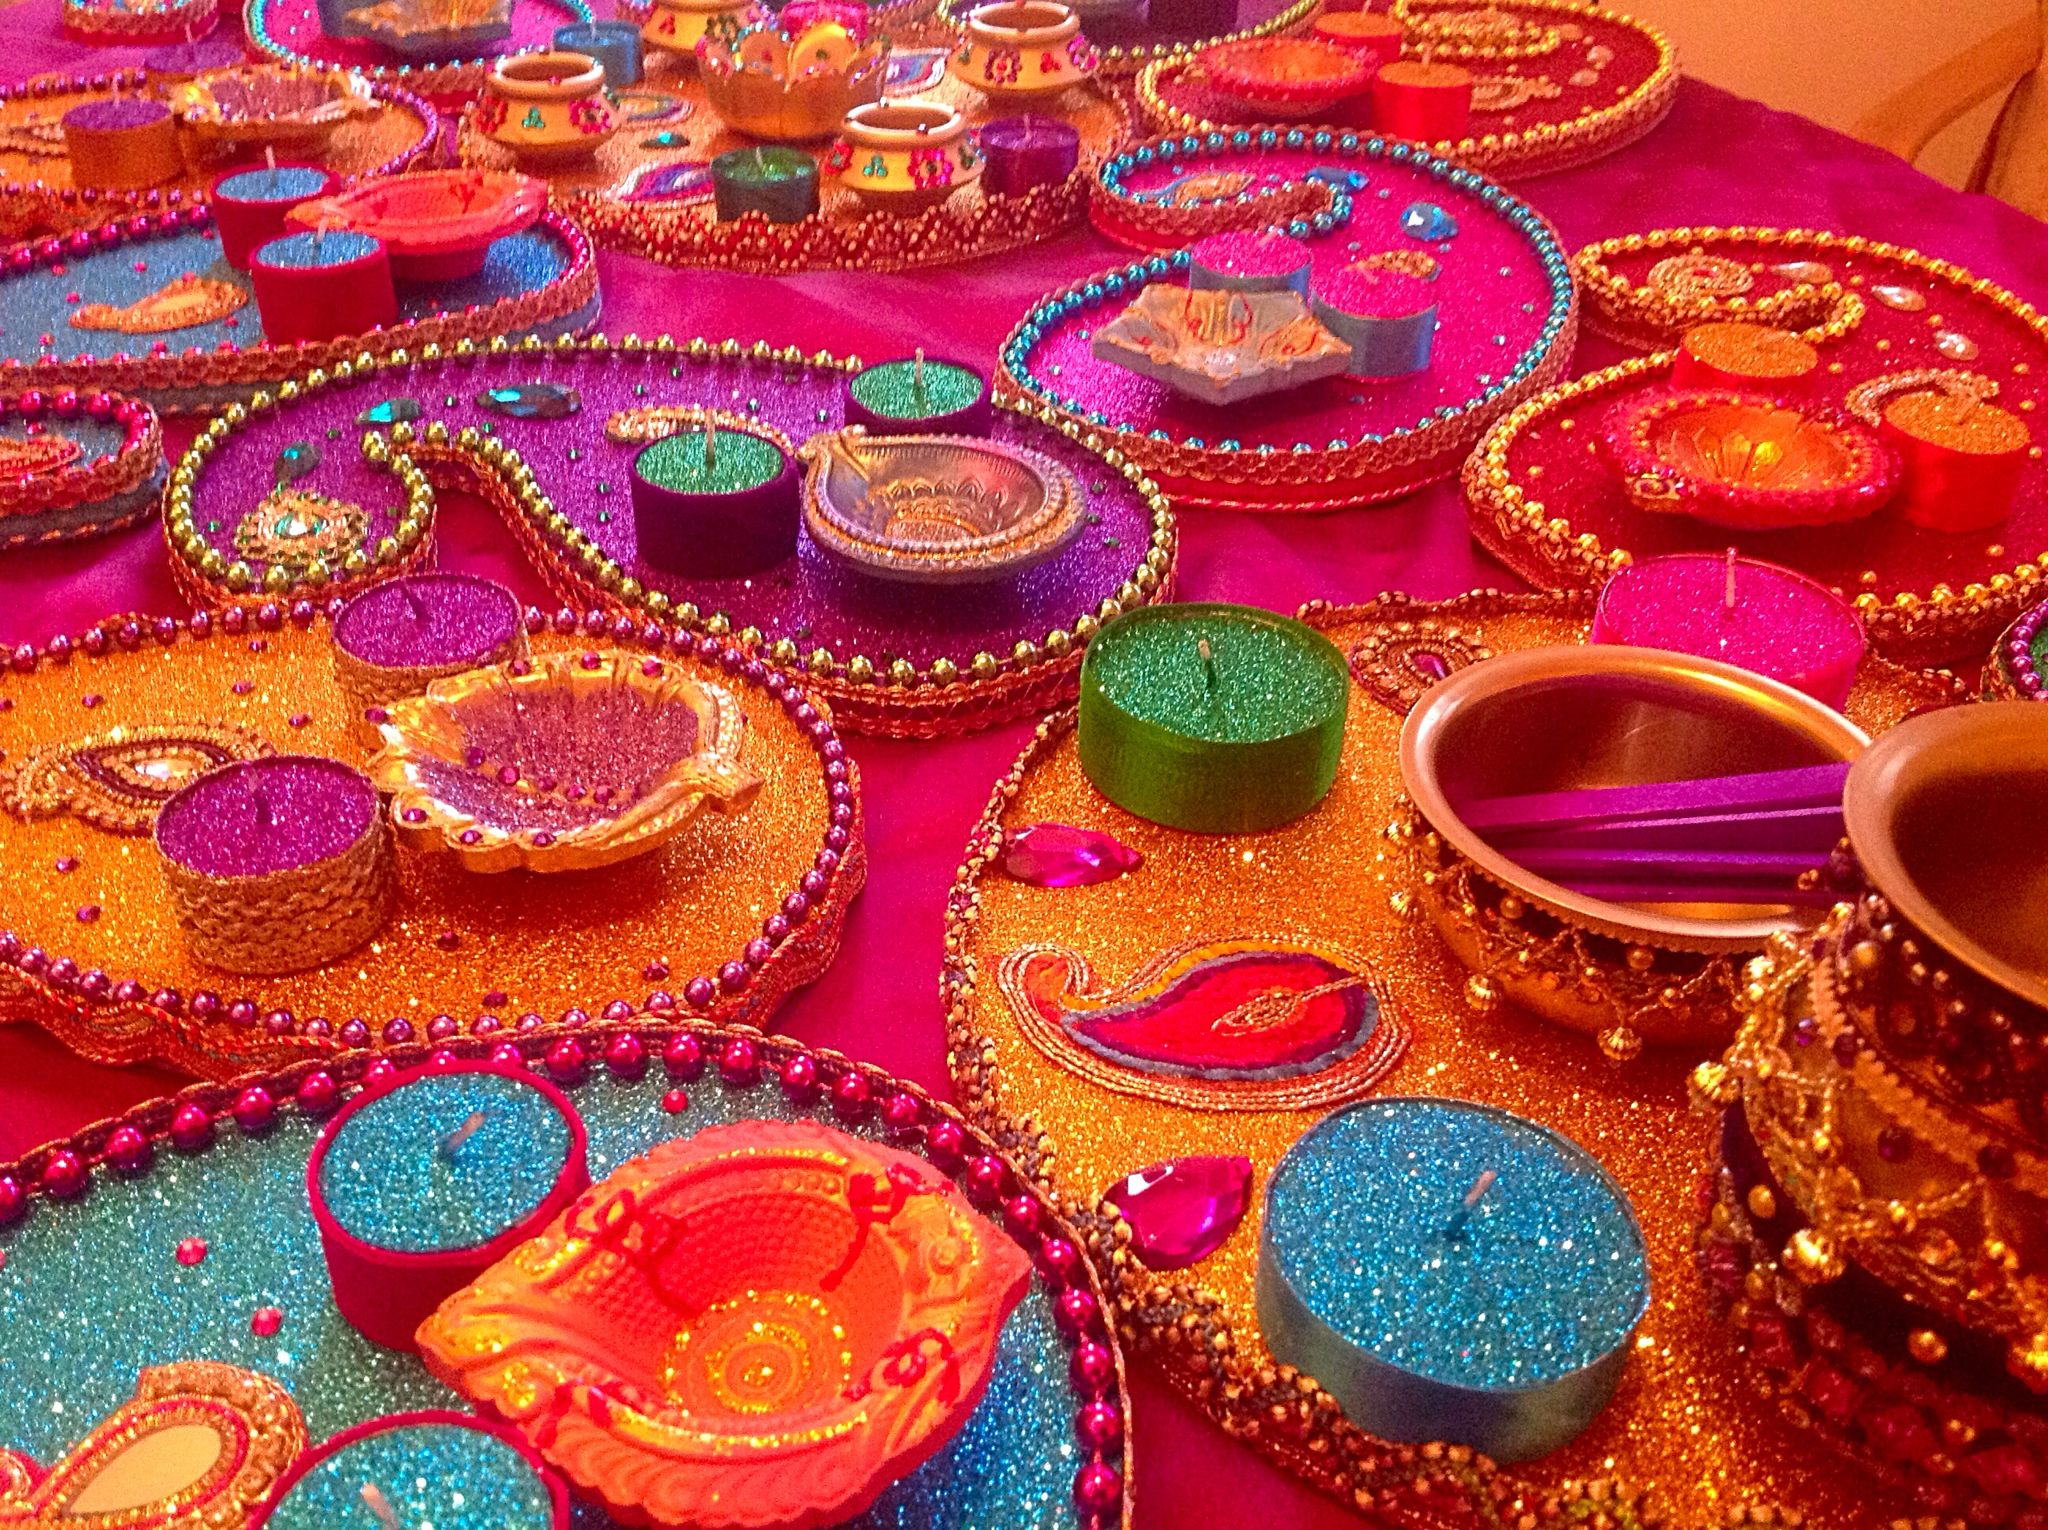 2.	Mehendi Tray and Lamps